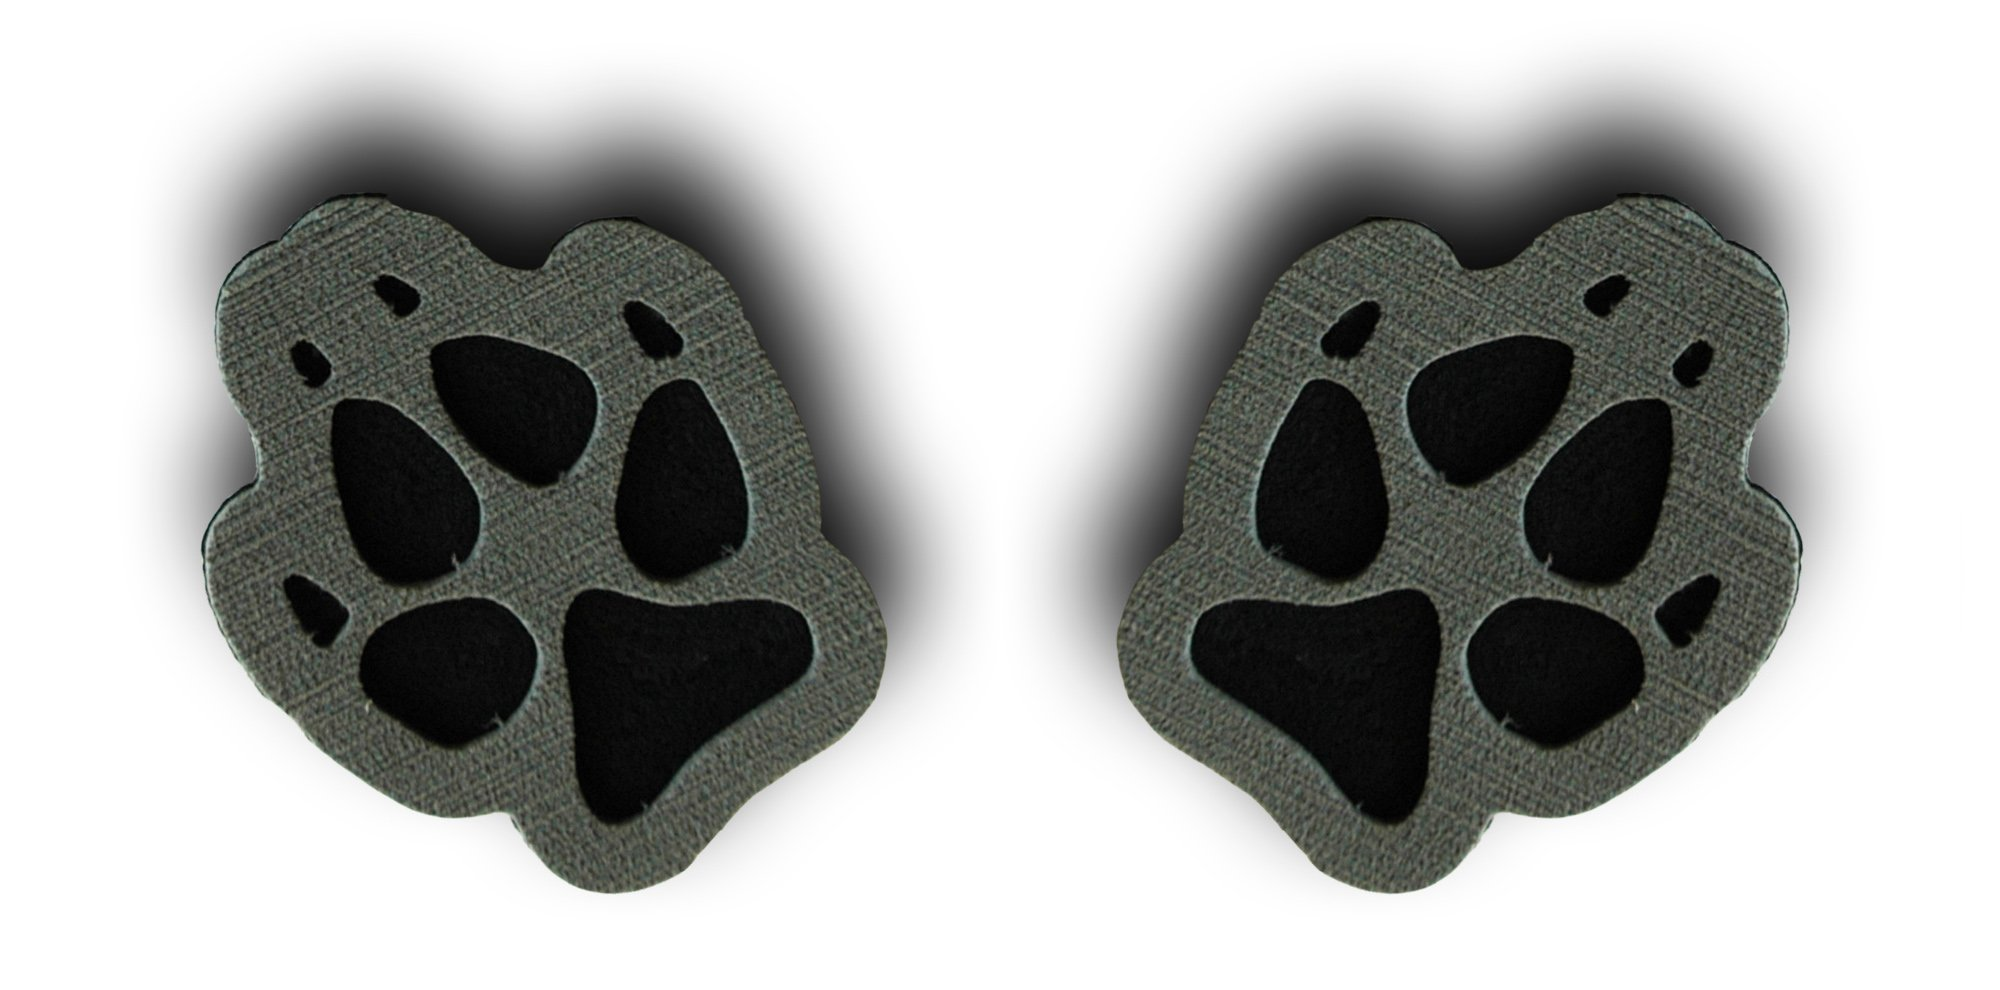 Toejamr Snowboard Stomp Pad - 2 Puppy Paws - Gray